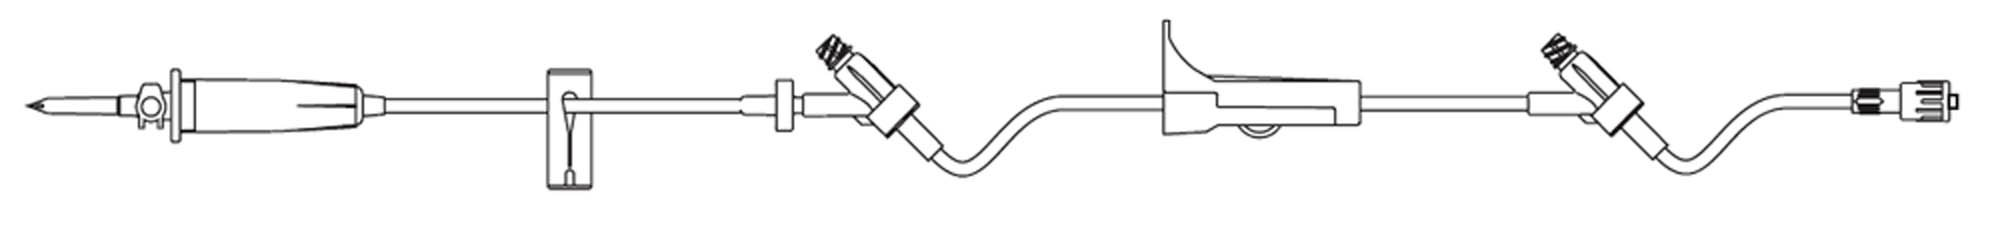 Image Of Administration Set SafeDay 15 Drops / mL Drip Rate 106 Inch Tubing 2 Ports